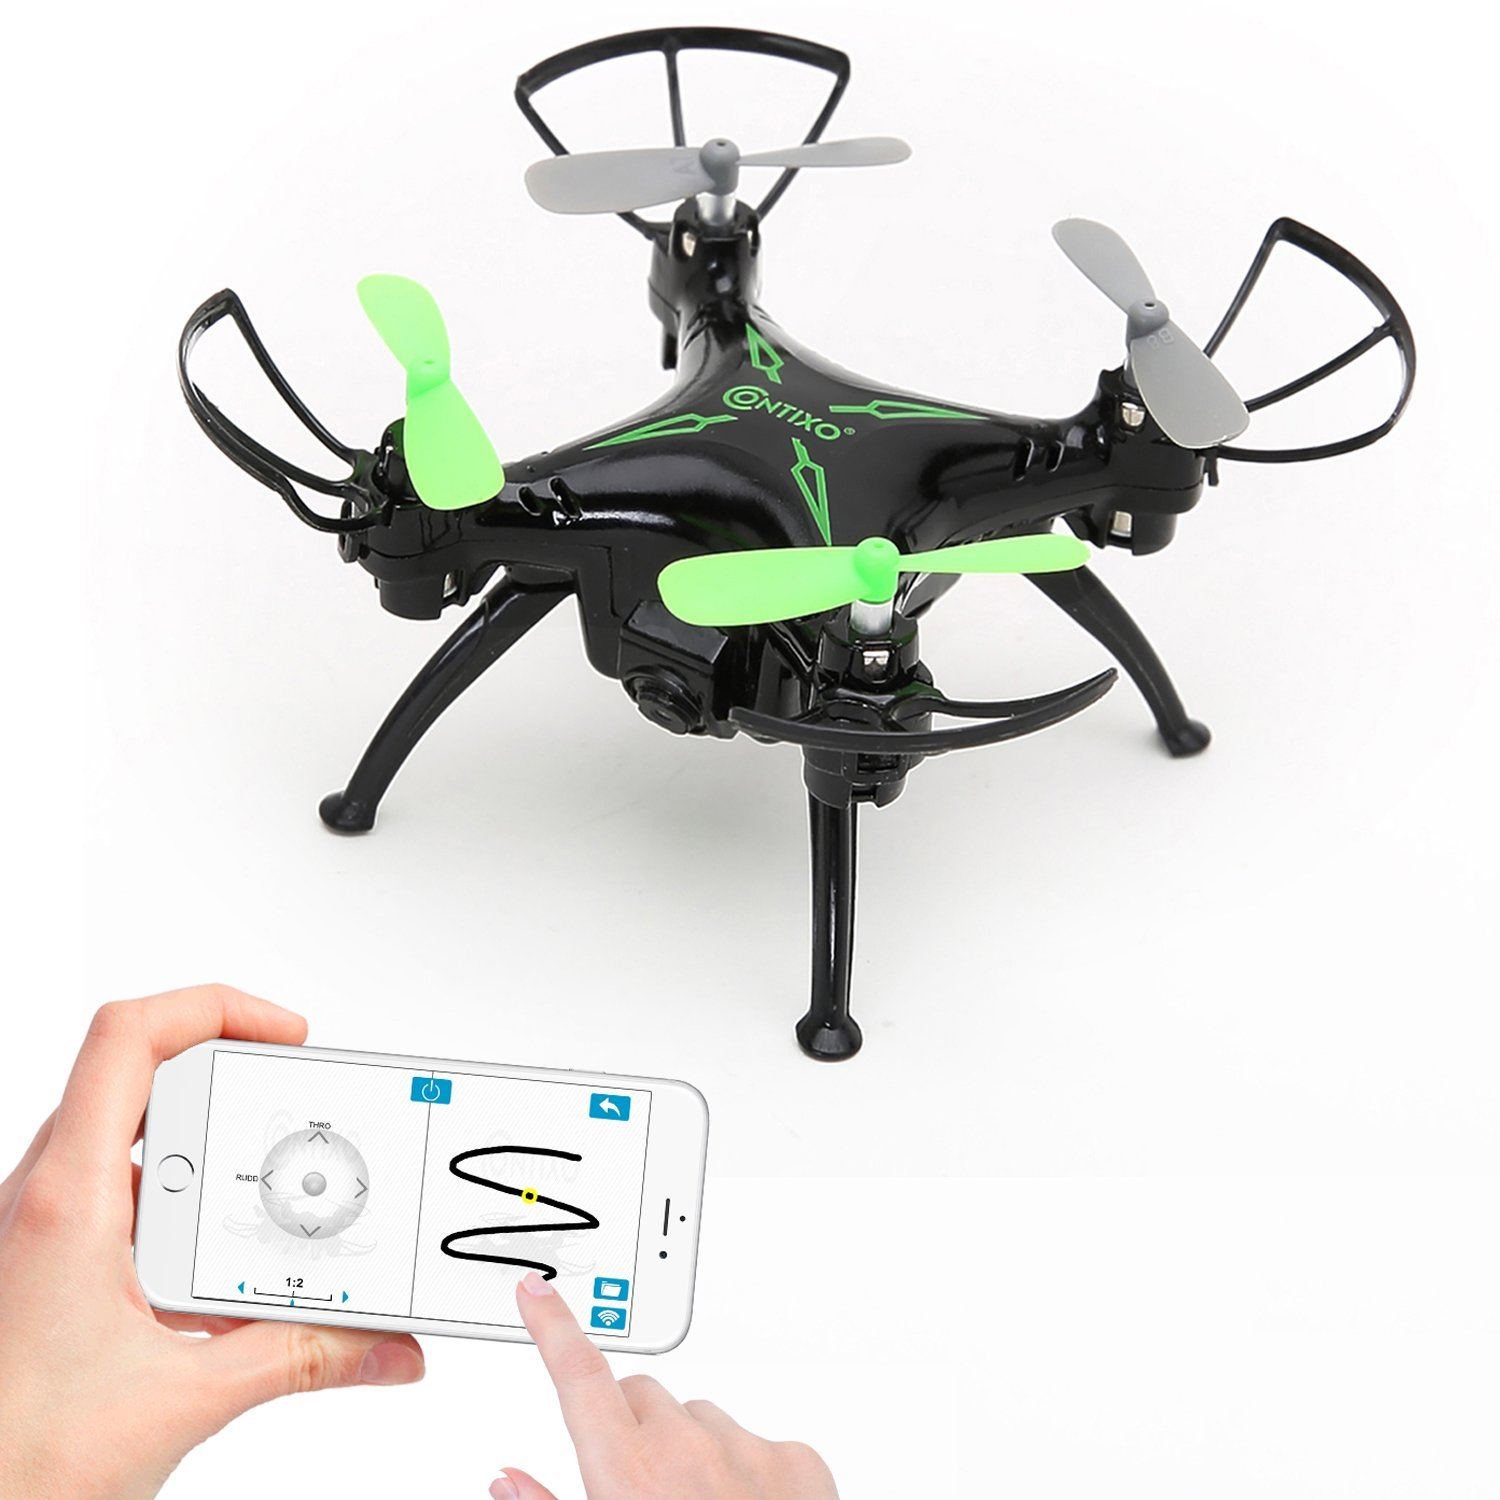 Contixo F3 World's Easiest Fly App Track-Controlled Mini Drone 720P HD WiFi Camera, 2.4GHz 4CH 6-Axis Gyro RC Quadcopter, Gravity Sensor, One-Key Return, Headless Mode